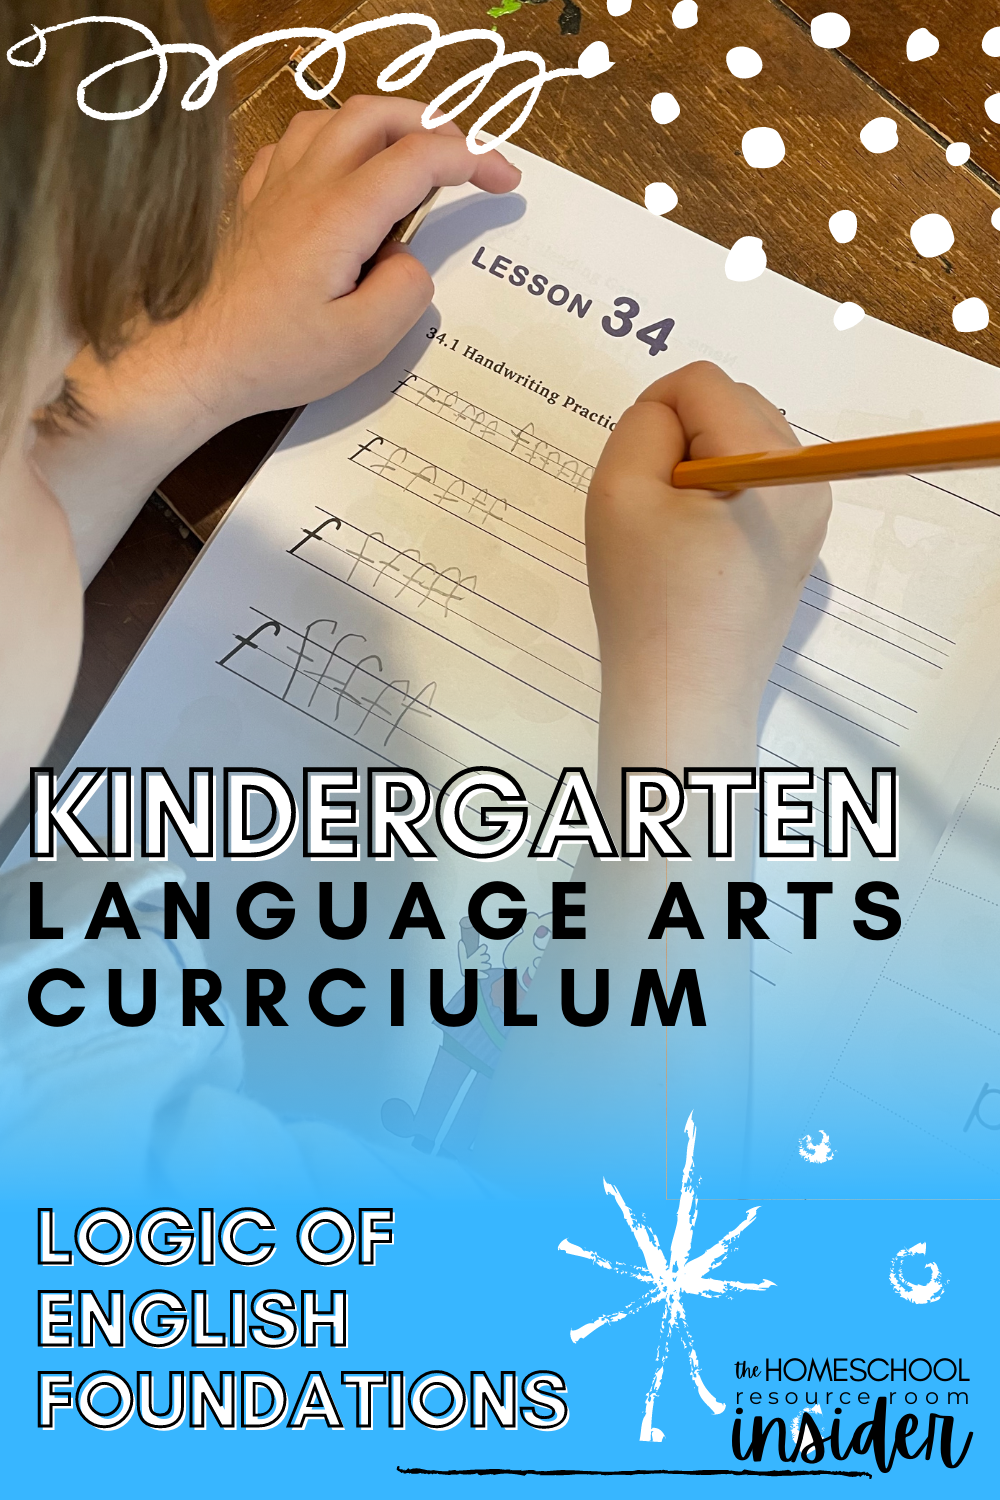 Language Arts Curriculum for Kindergarten: A review of Logic of English Foundations, a complete LA program for learning to read, comprehension, spelling, writing, handwriting, and grammar.